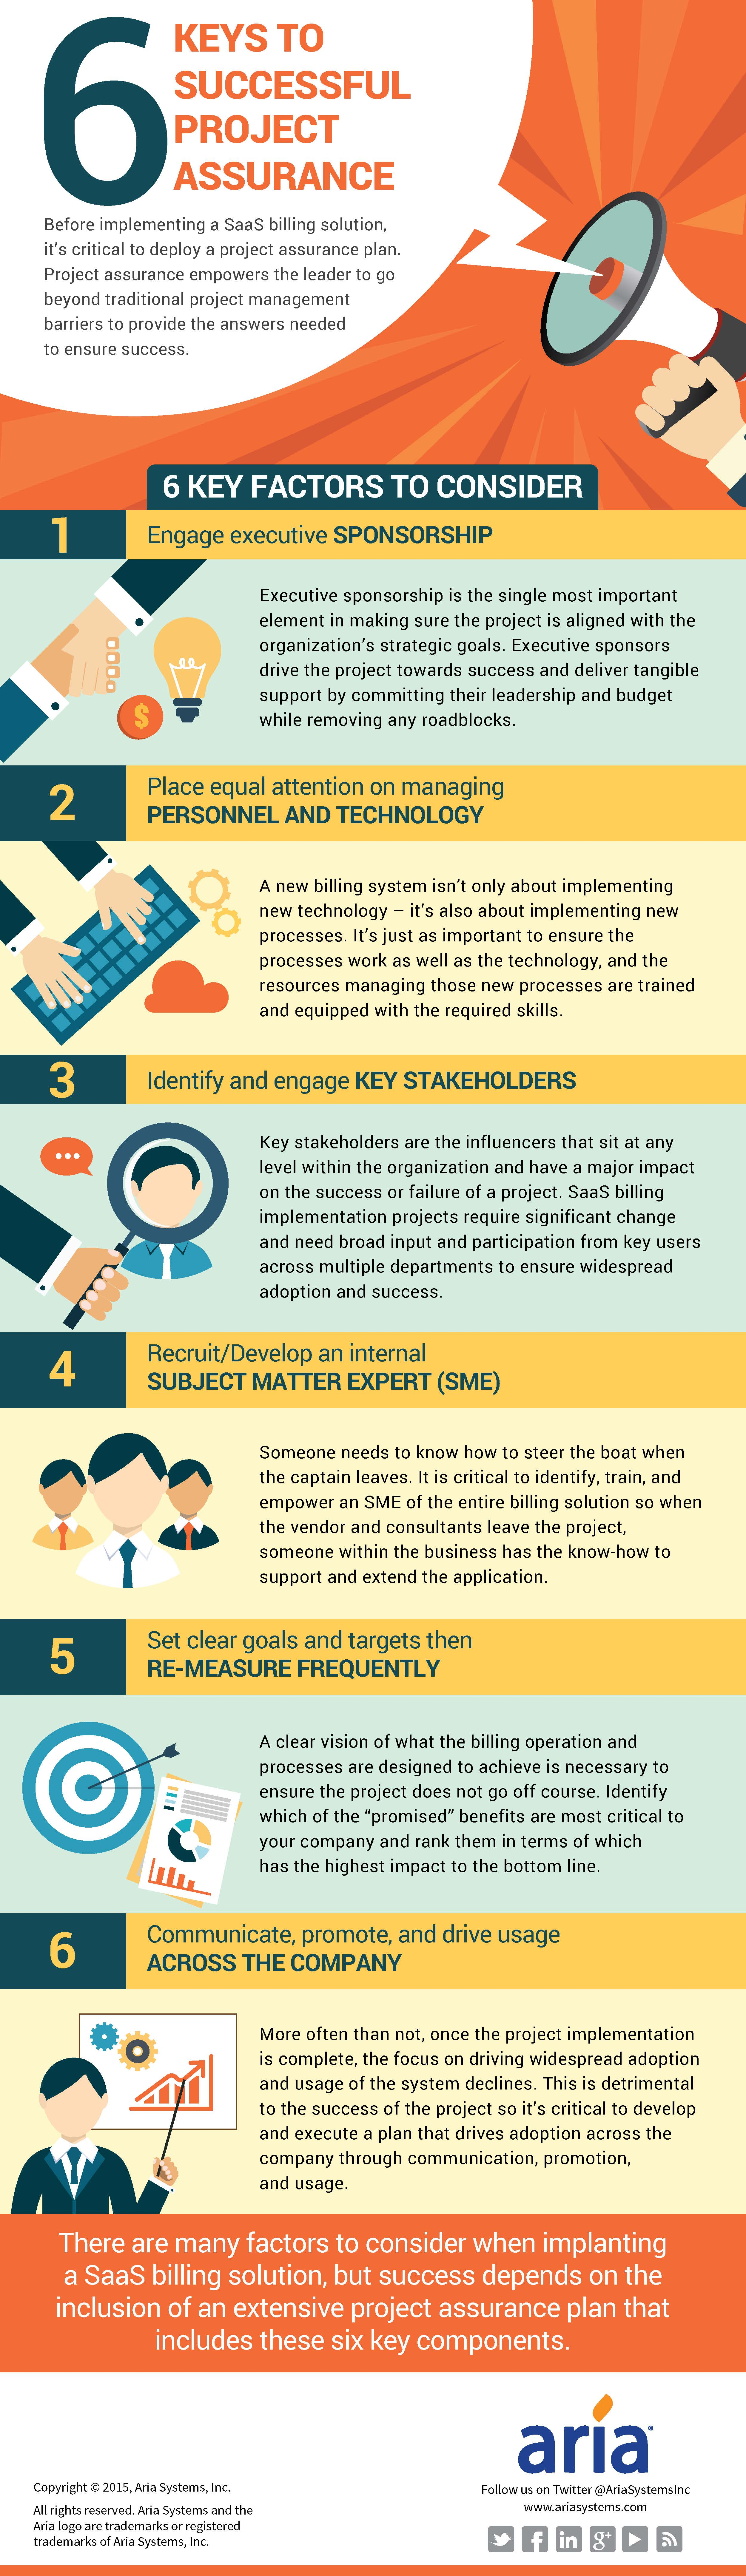 6 Keys To Successful Project Assurance